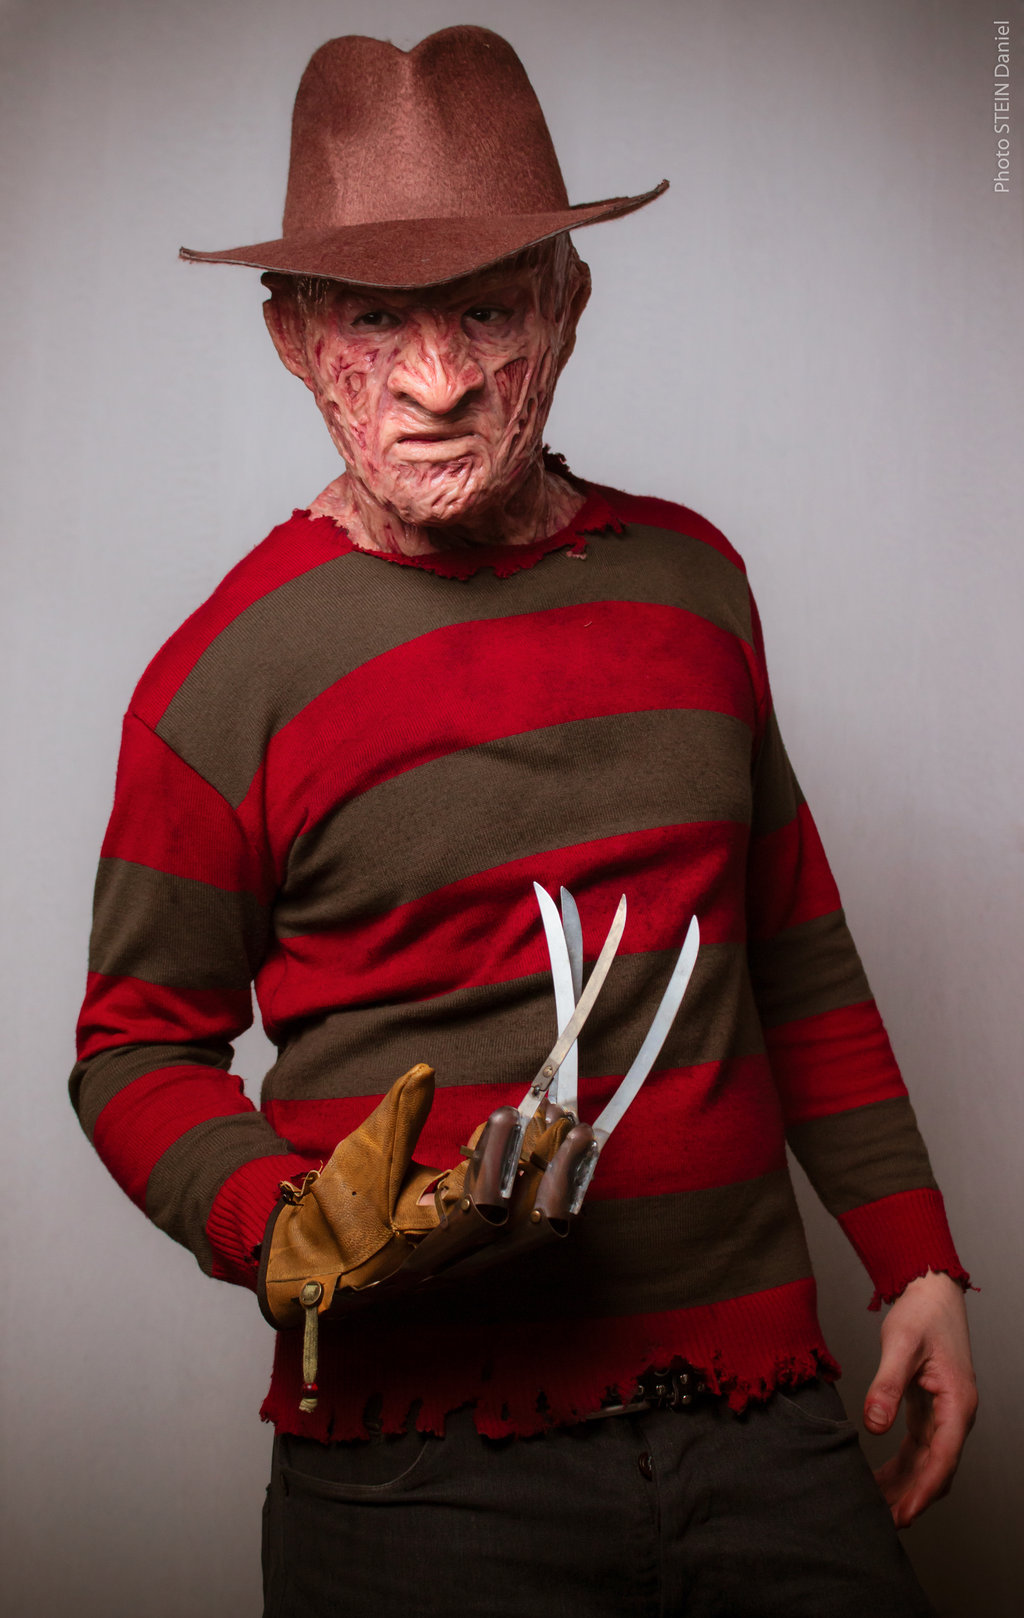 50 freddy cougar wallpaper on wallpapersafari - Pictures of freddy cougar ...